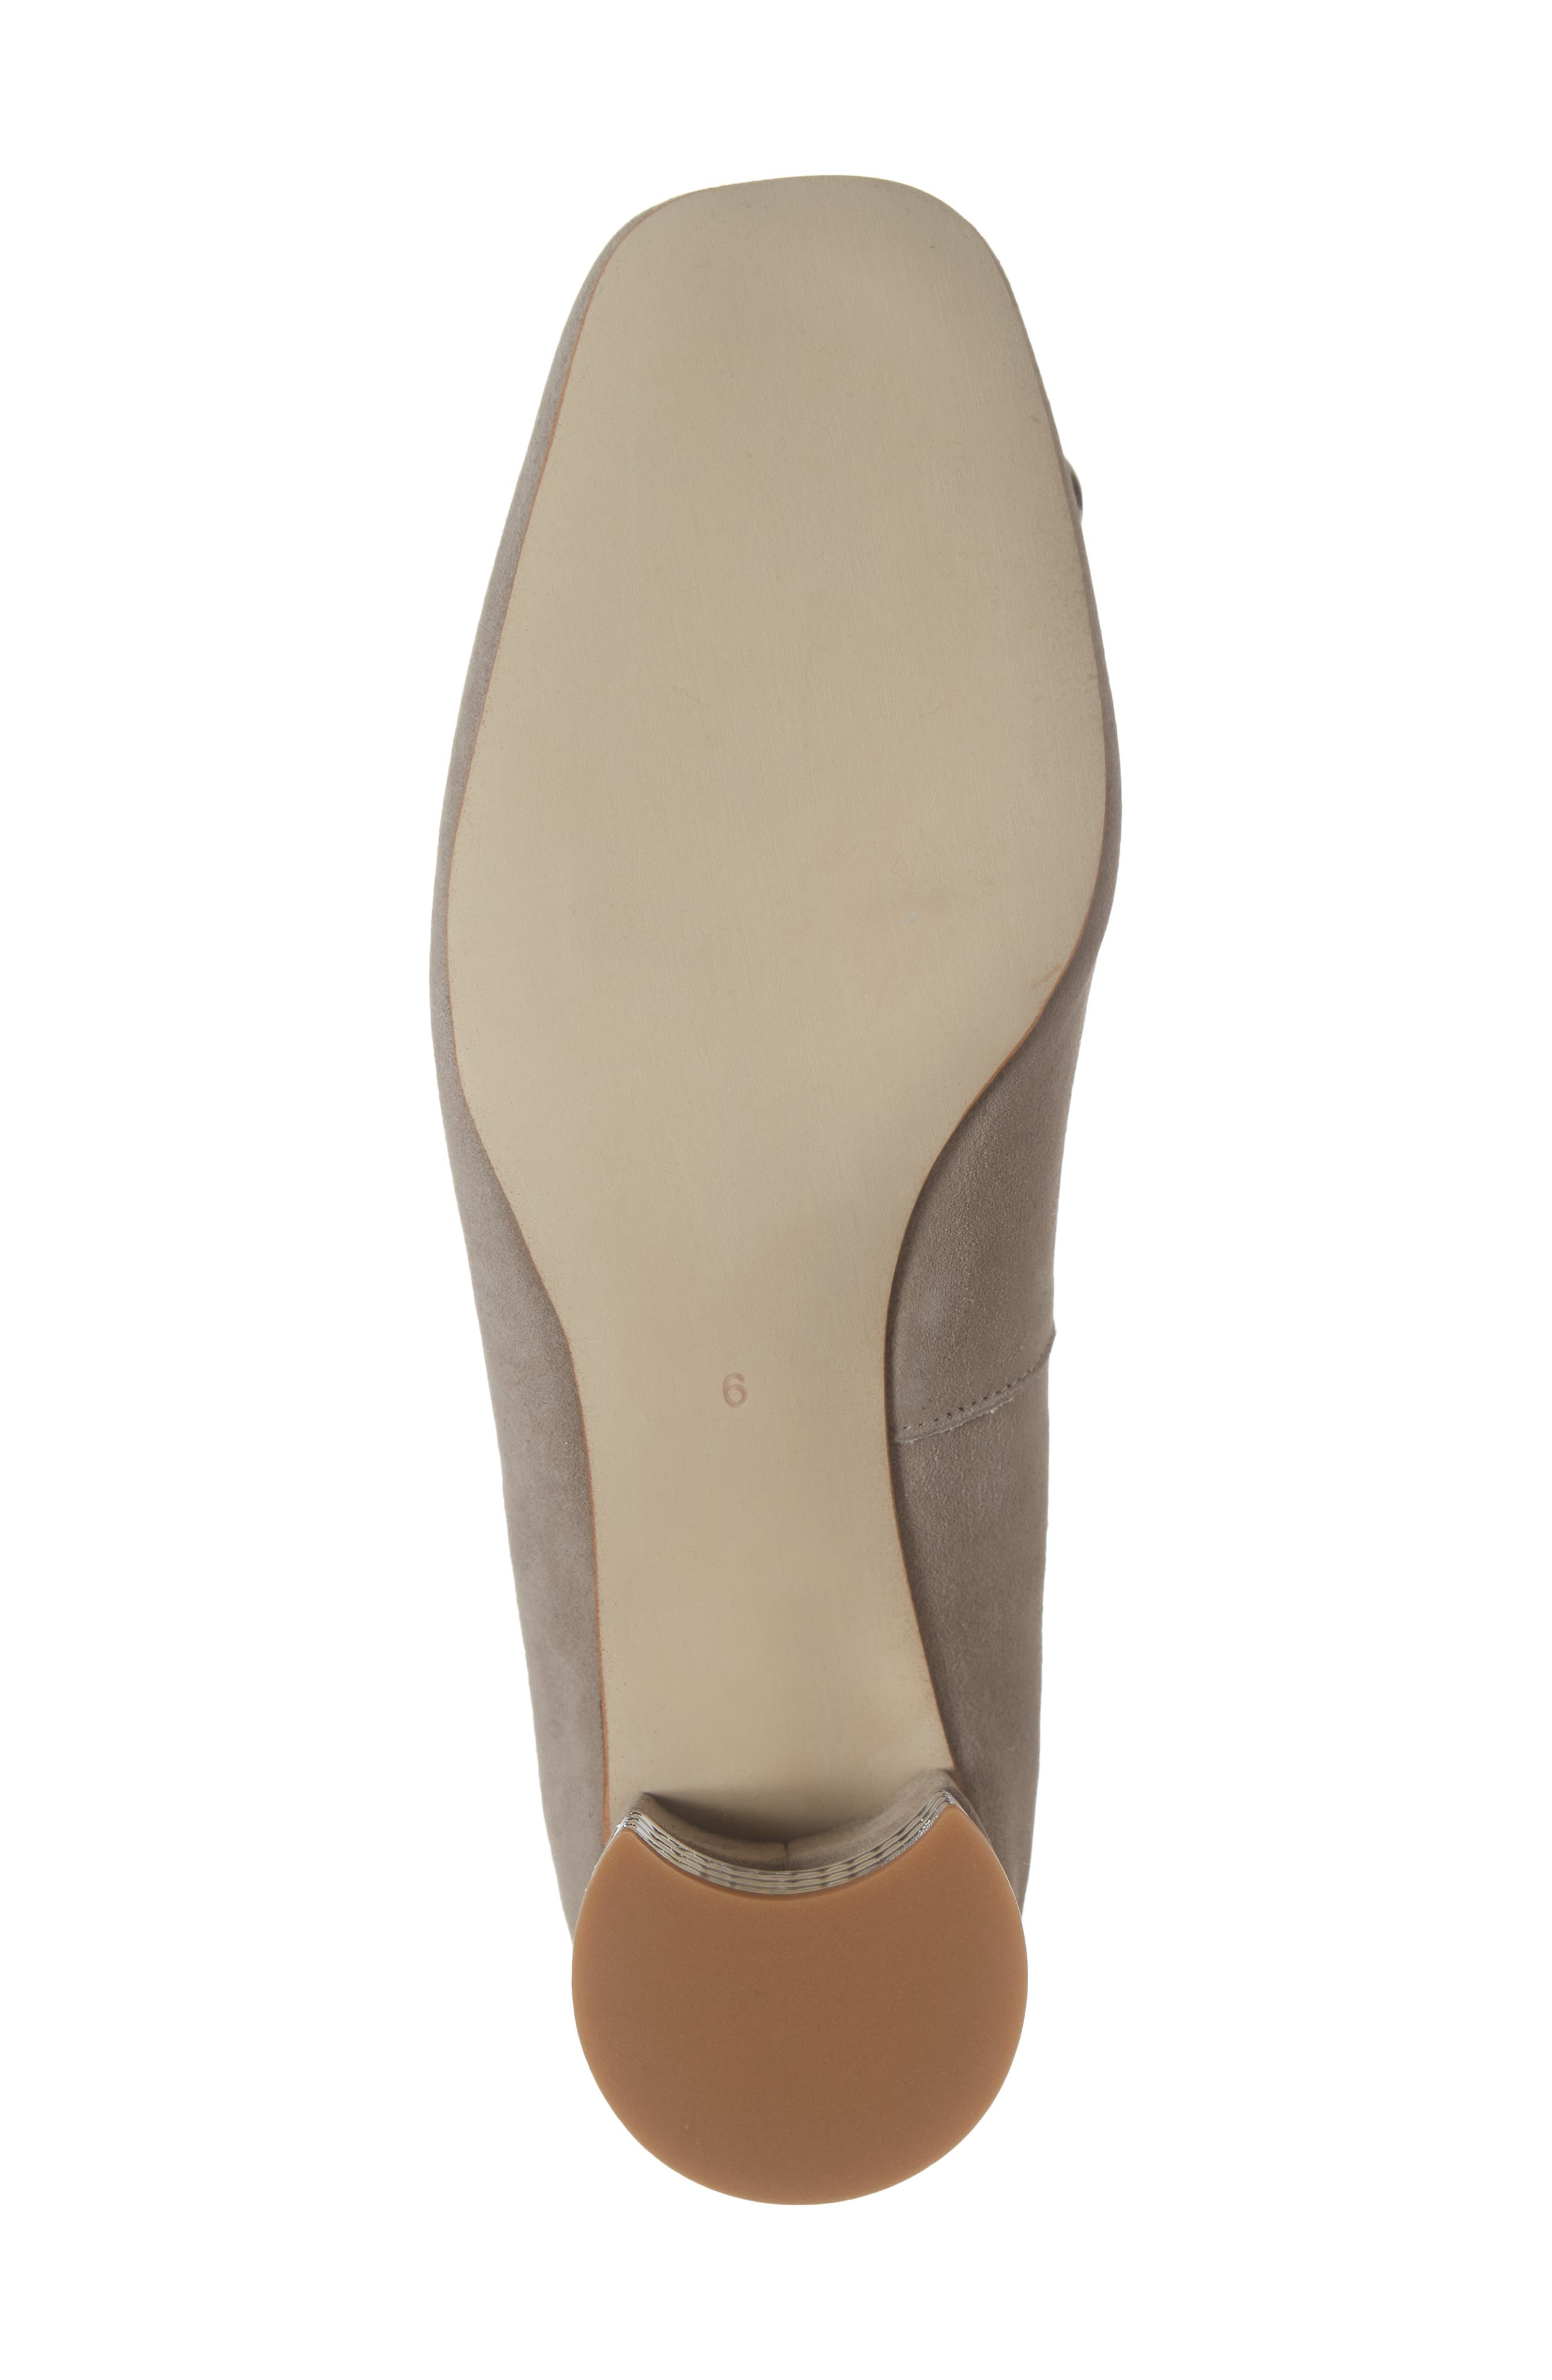 JEFFREY CAMPBELL, Carys Pump, Alternate thumbnail 6, color, TAUPE SUEDE